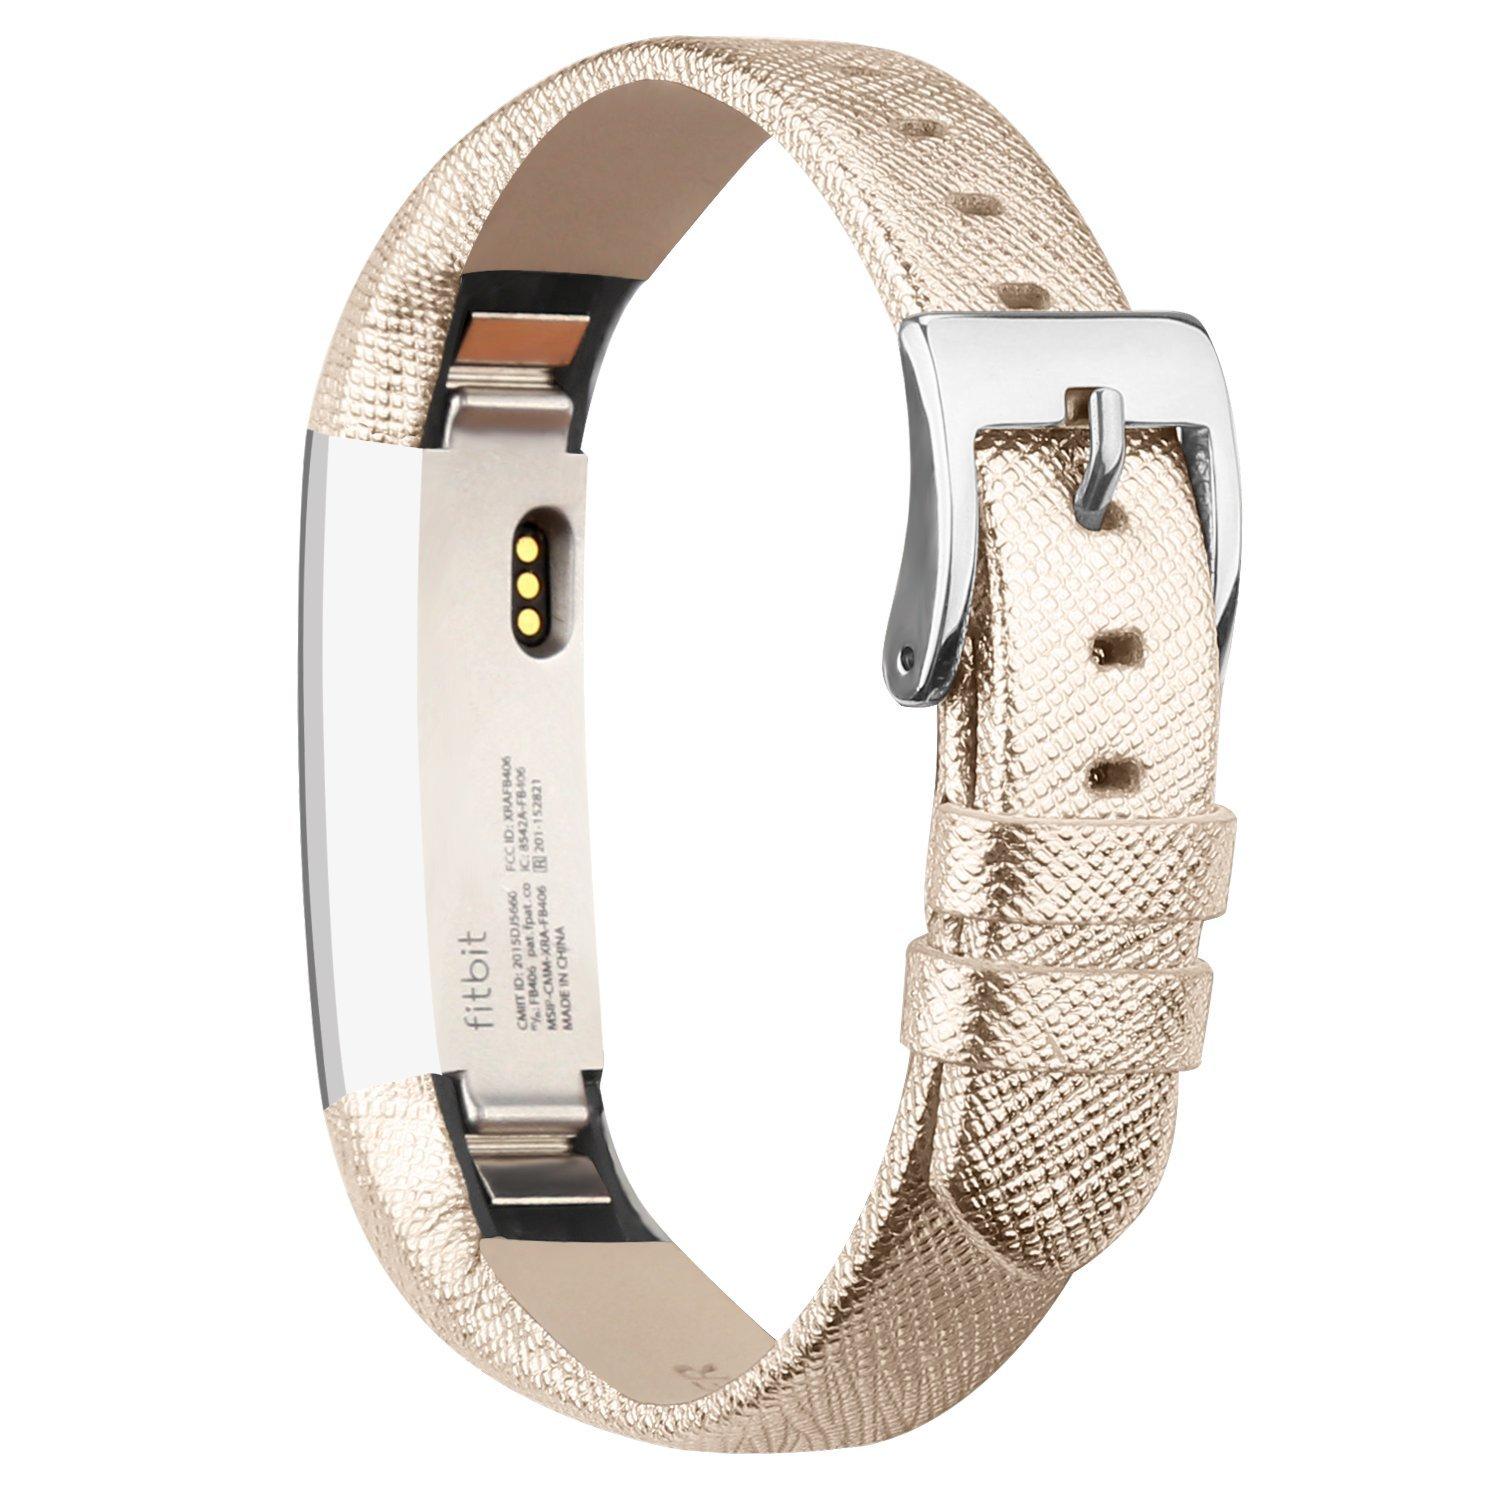 AdePoy Replacement Bands For Fitbit Alta Leather Wristband Sport Strap Band For Fitbit Alta/Fitbit Alta HR